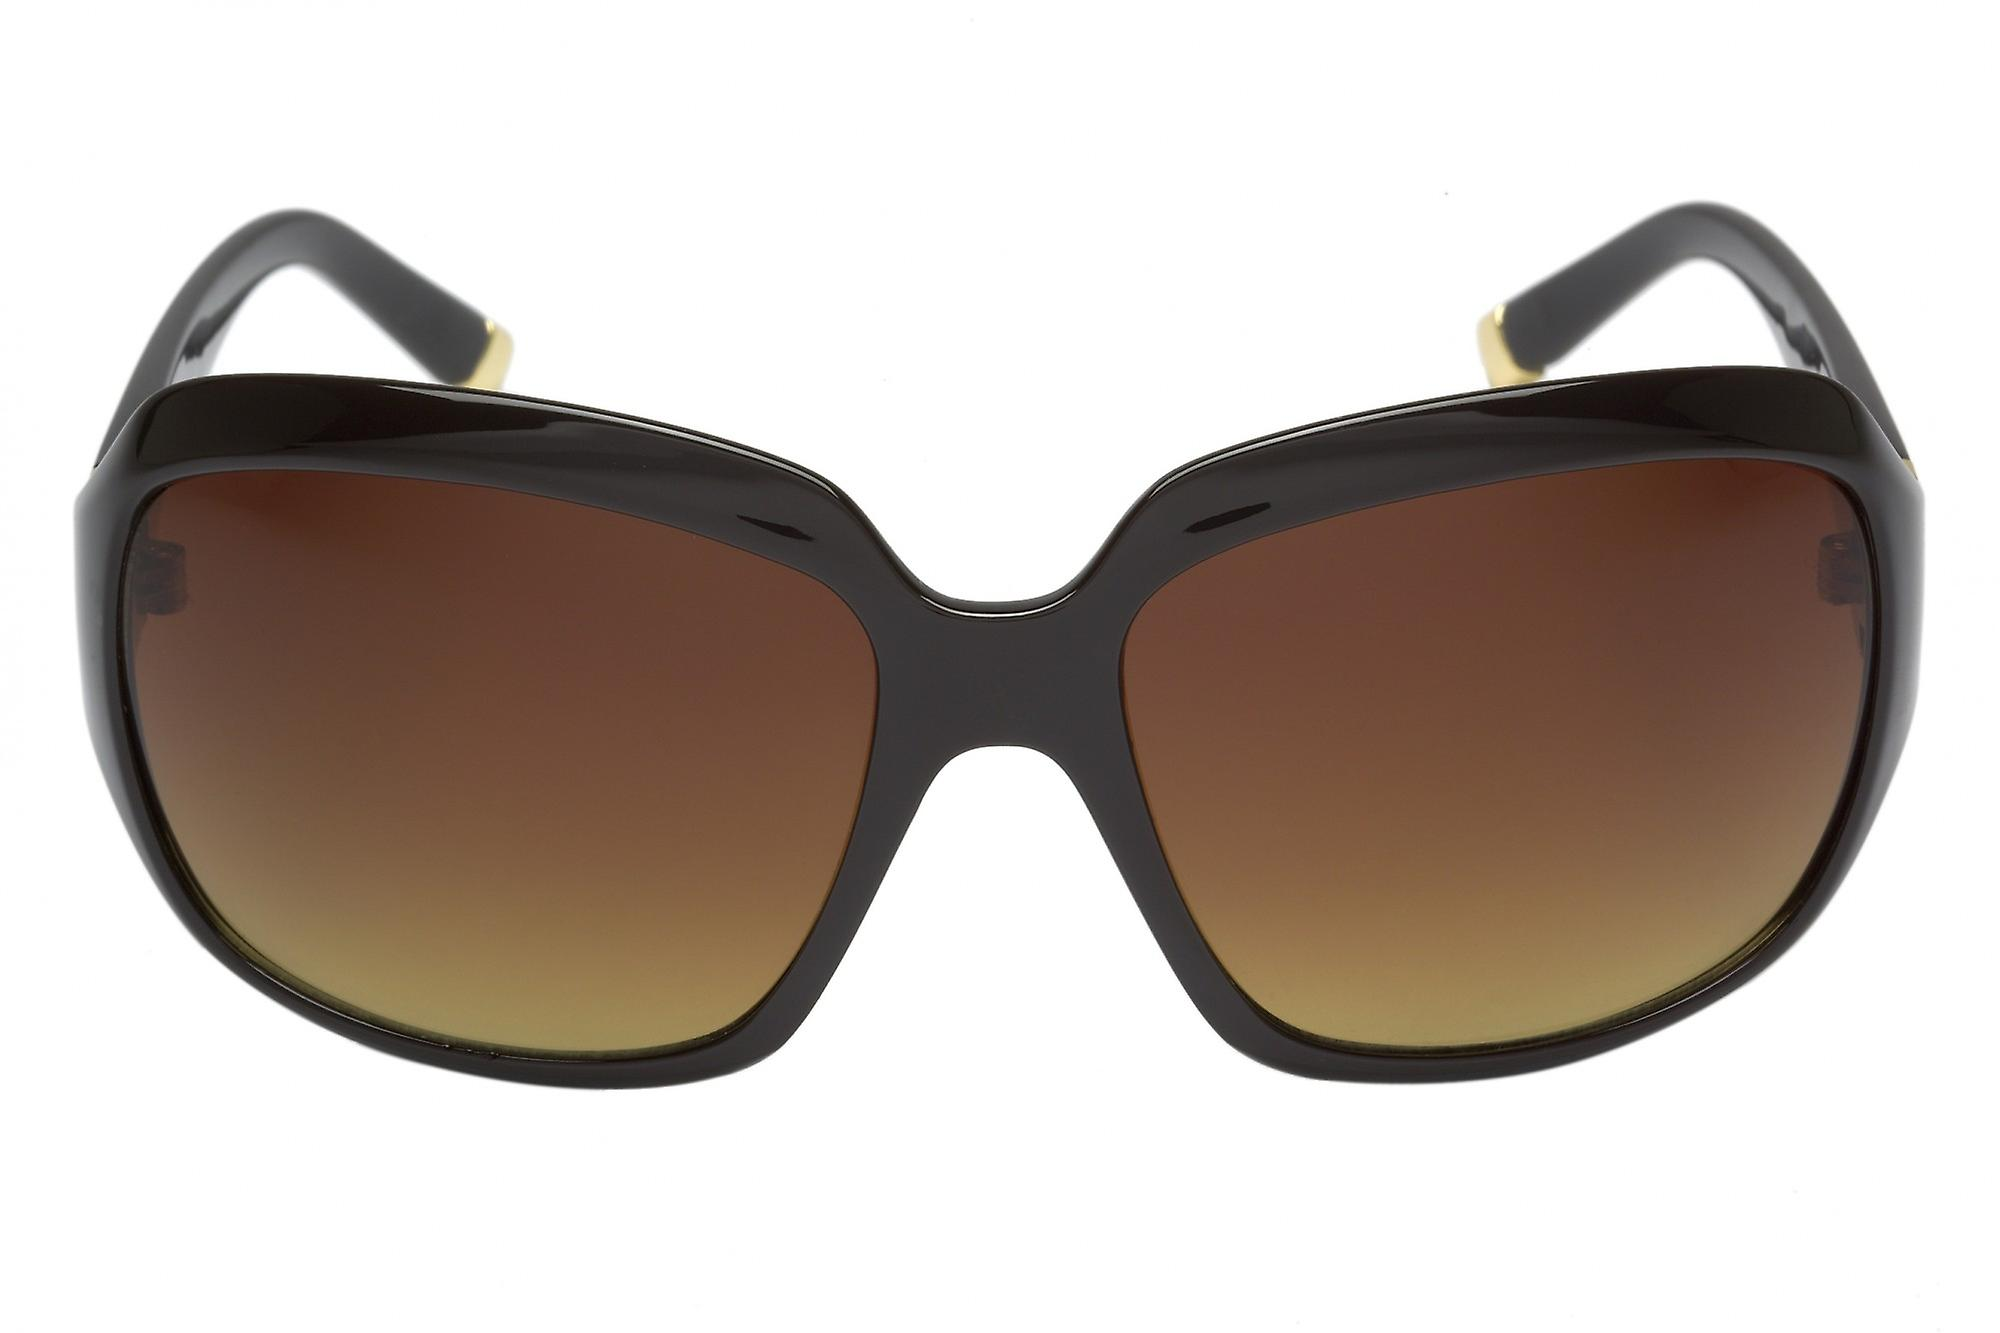 Burgmeister Ladies sunglasses Berlin, SBM106-242